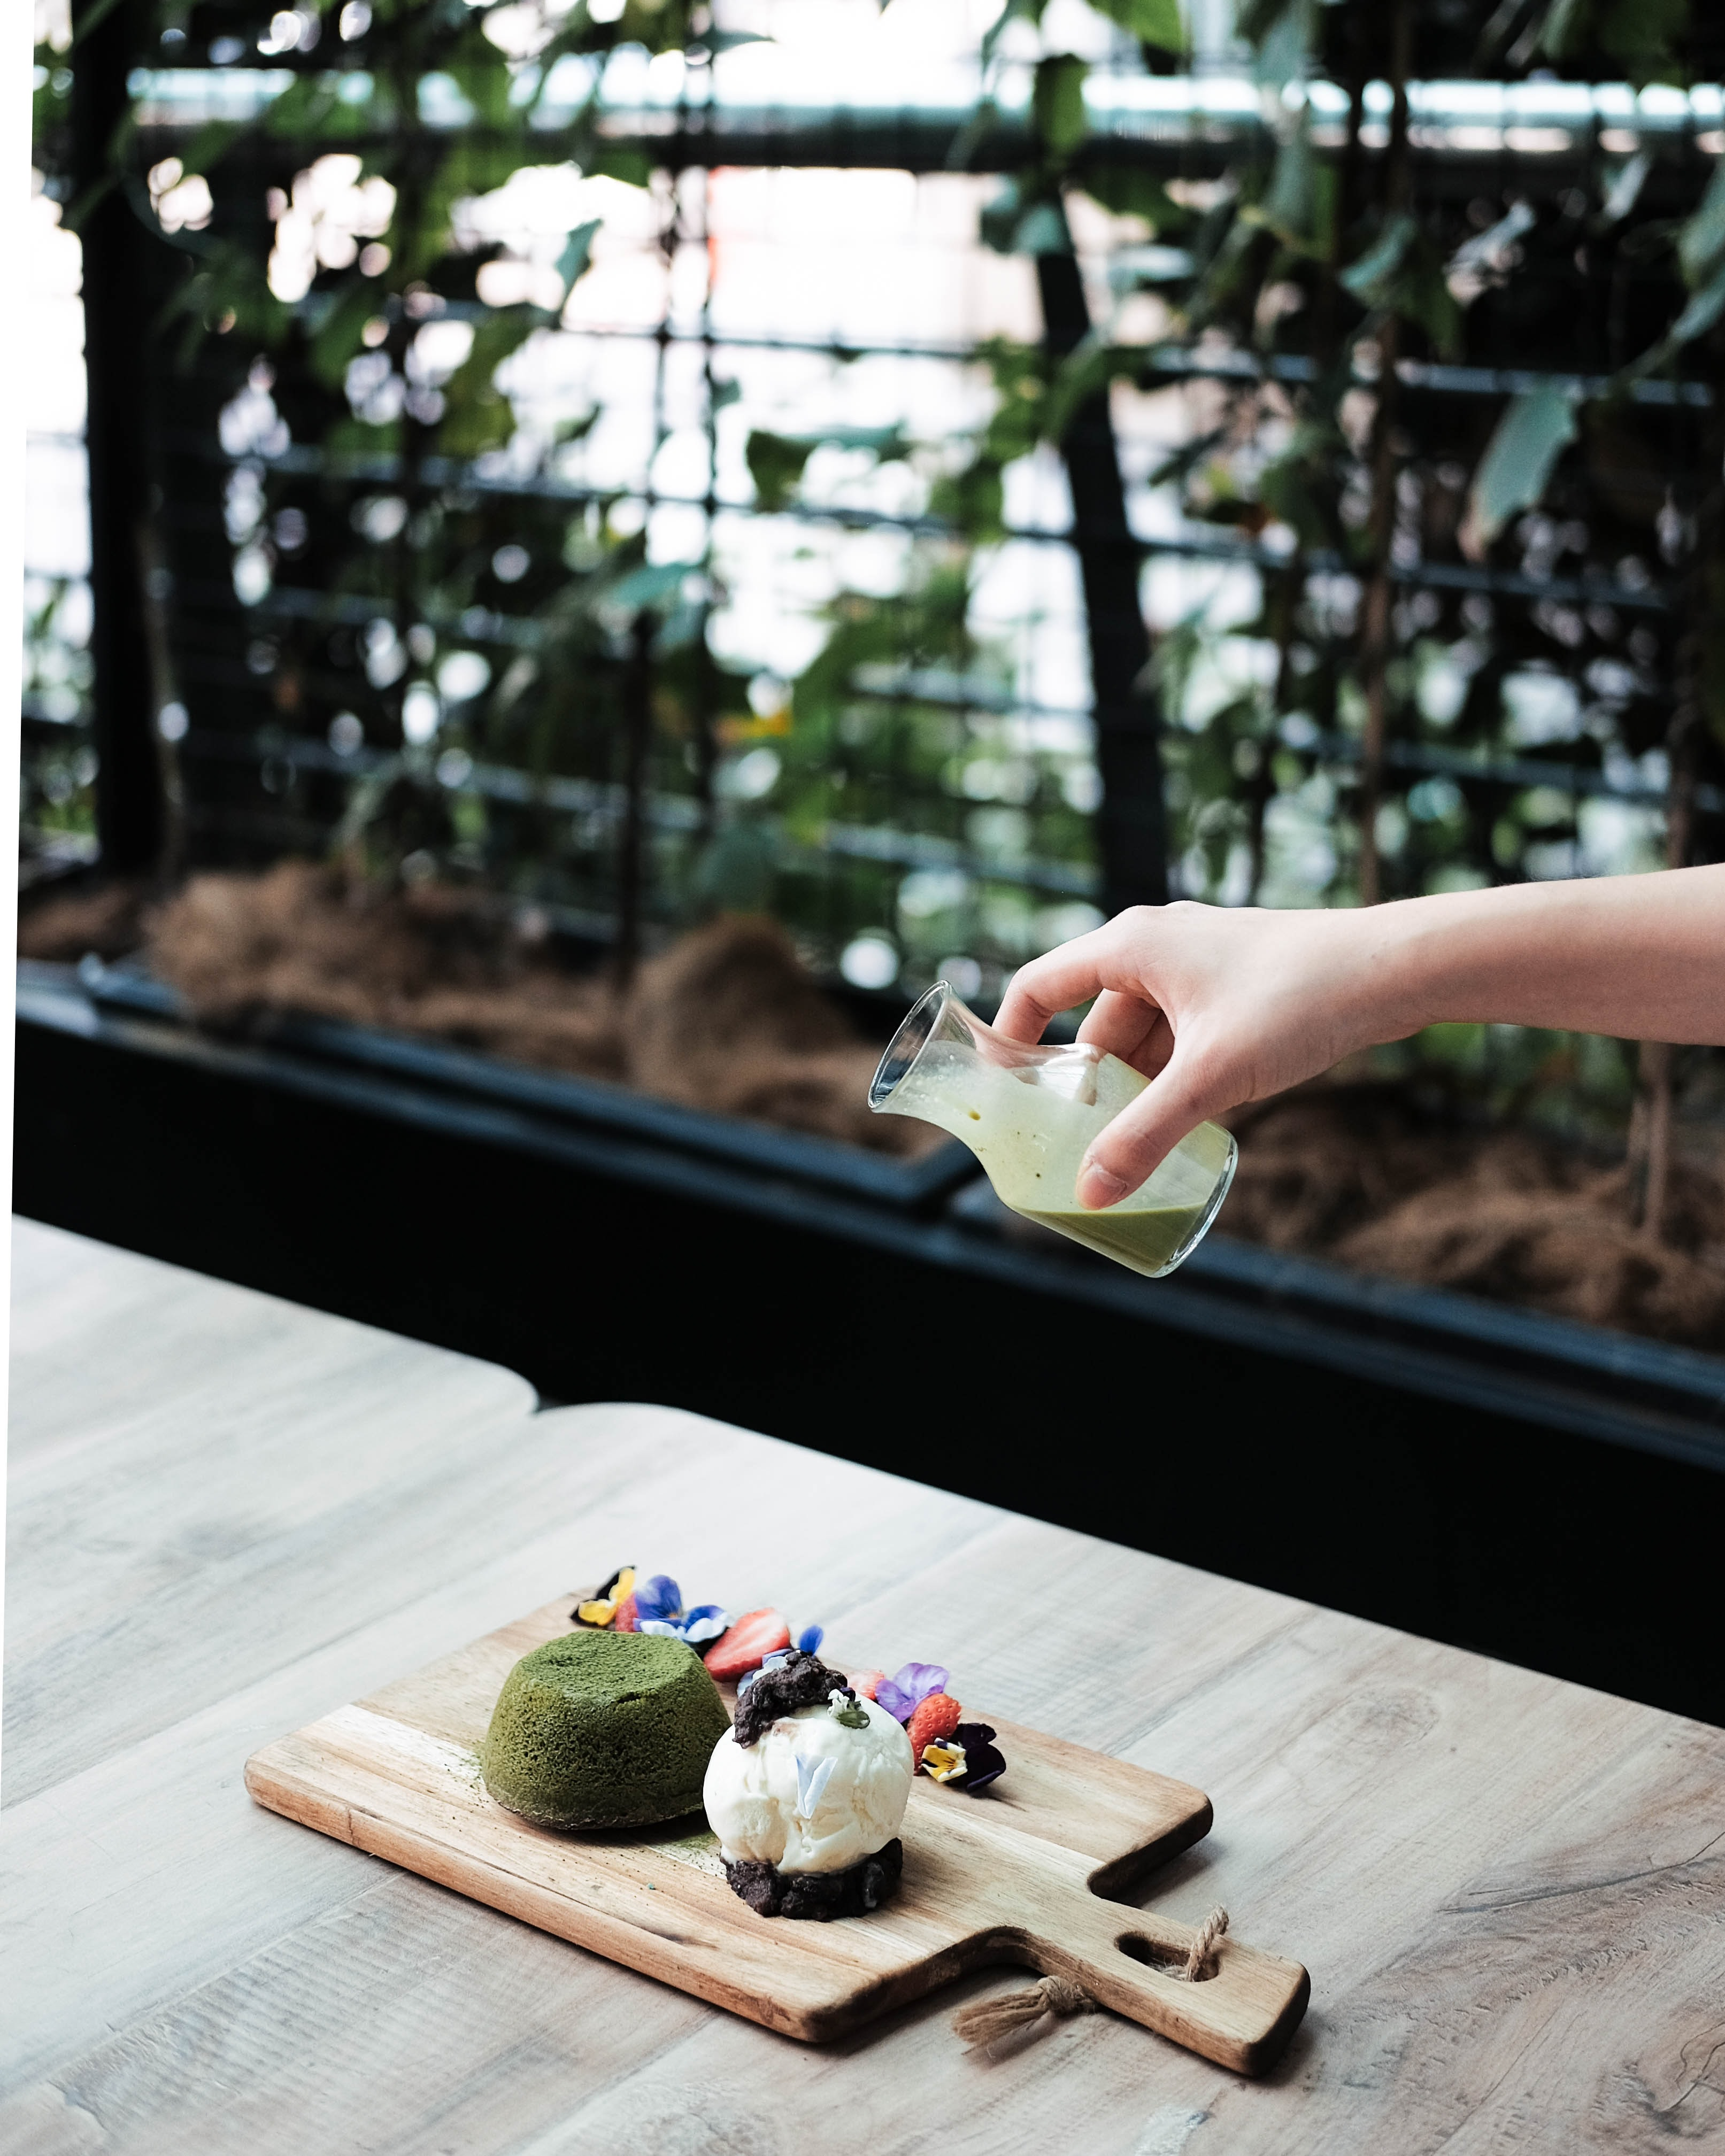 person pouring green liquid on pastries